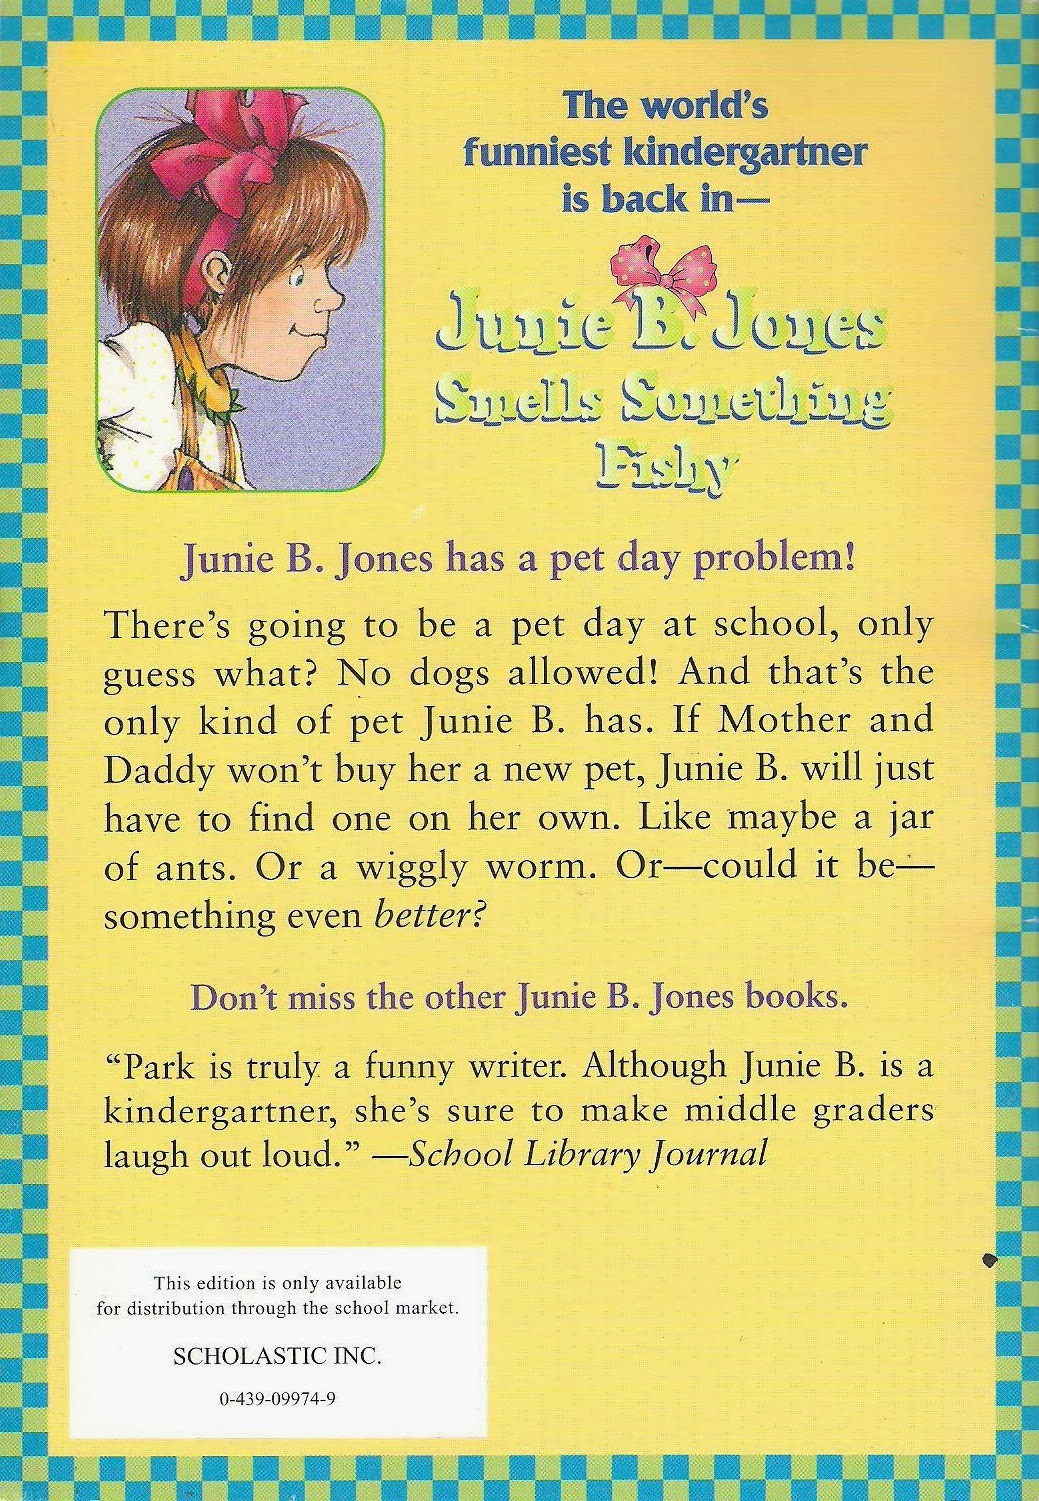 junie b jones smells something fishy book report A quality educational site offering 5000+ free printable theme units, word puzzles, writing forms, book report forms,math, ideas, lessons and much more great for new teachers, student teachers , homeschooling and teachers who like creative ways to teach join the popular membership section.